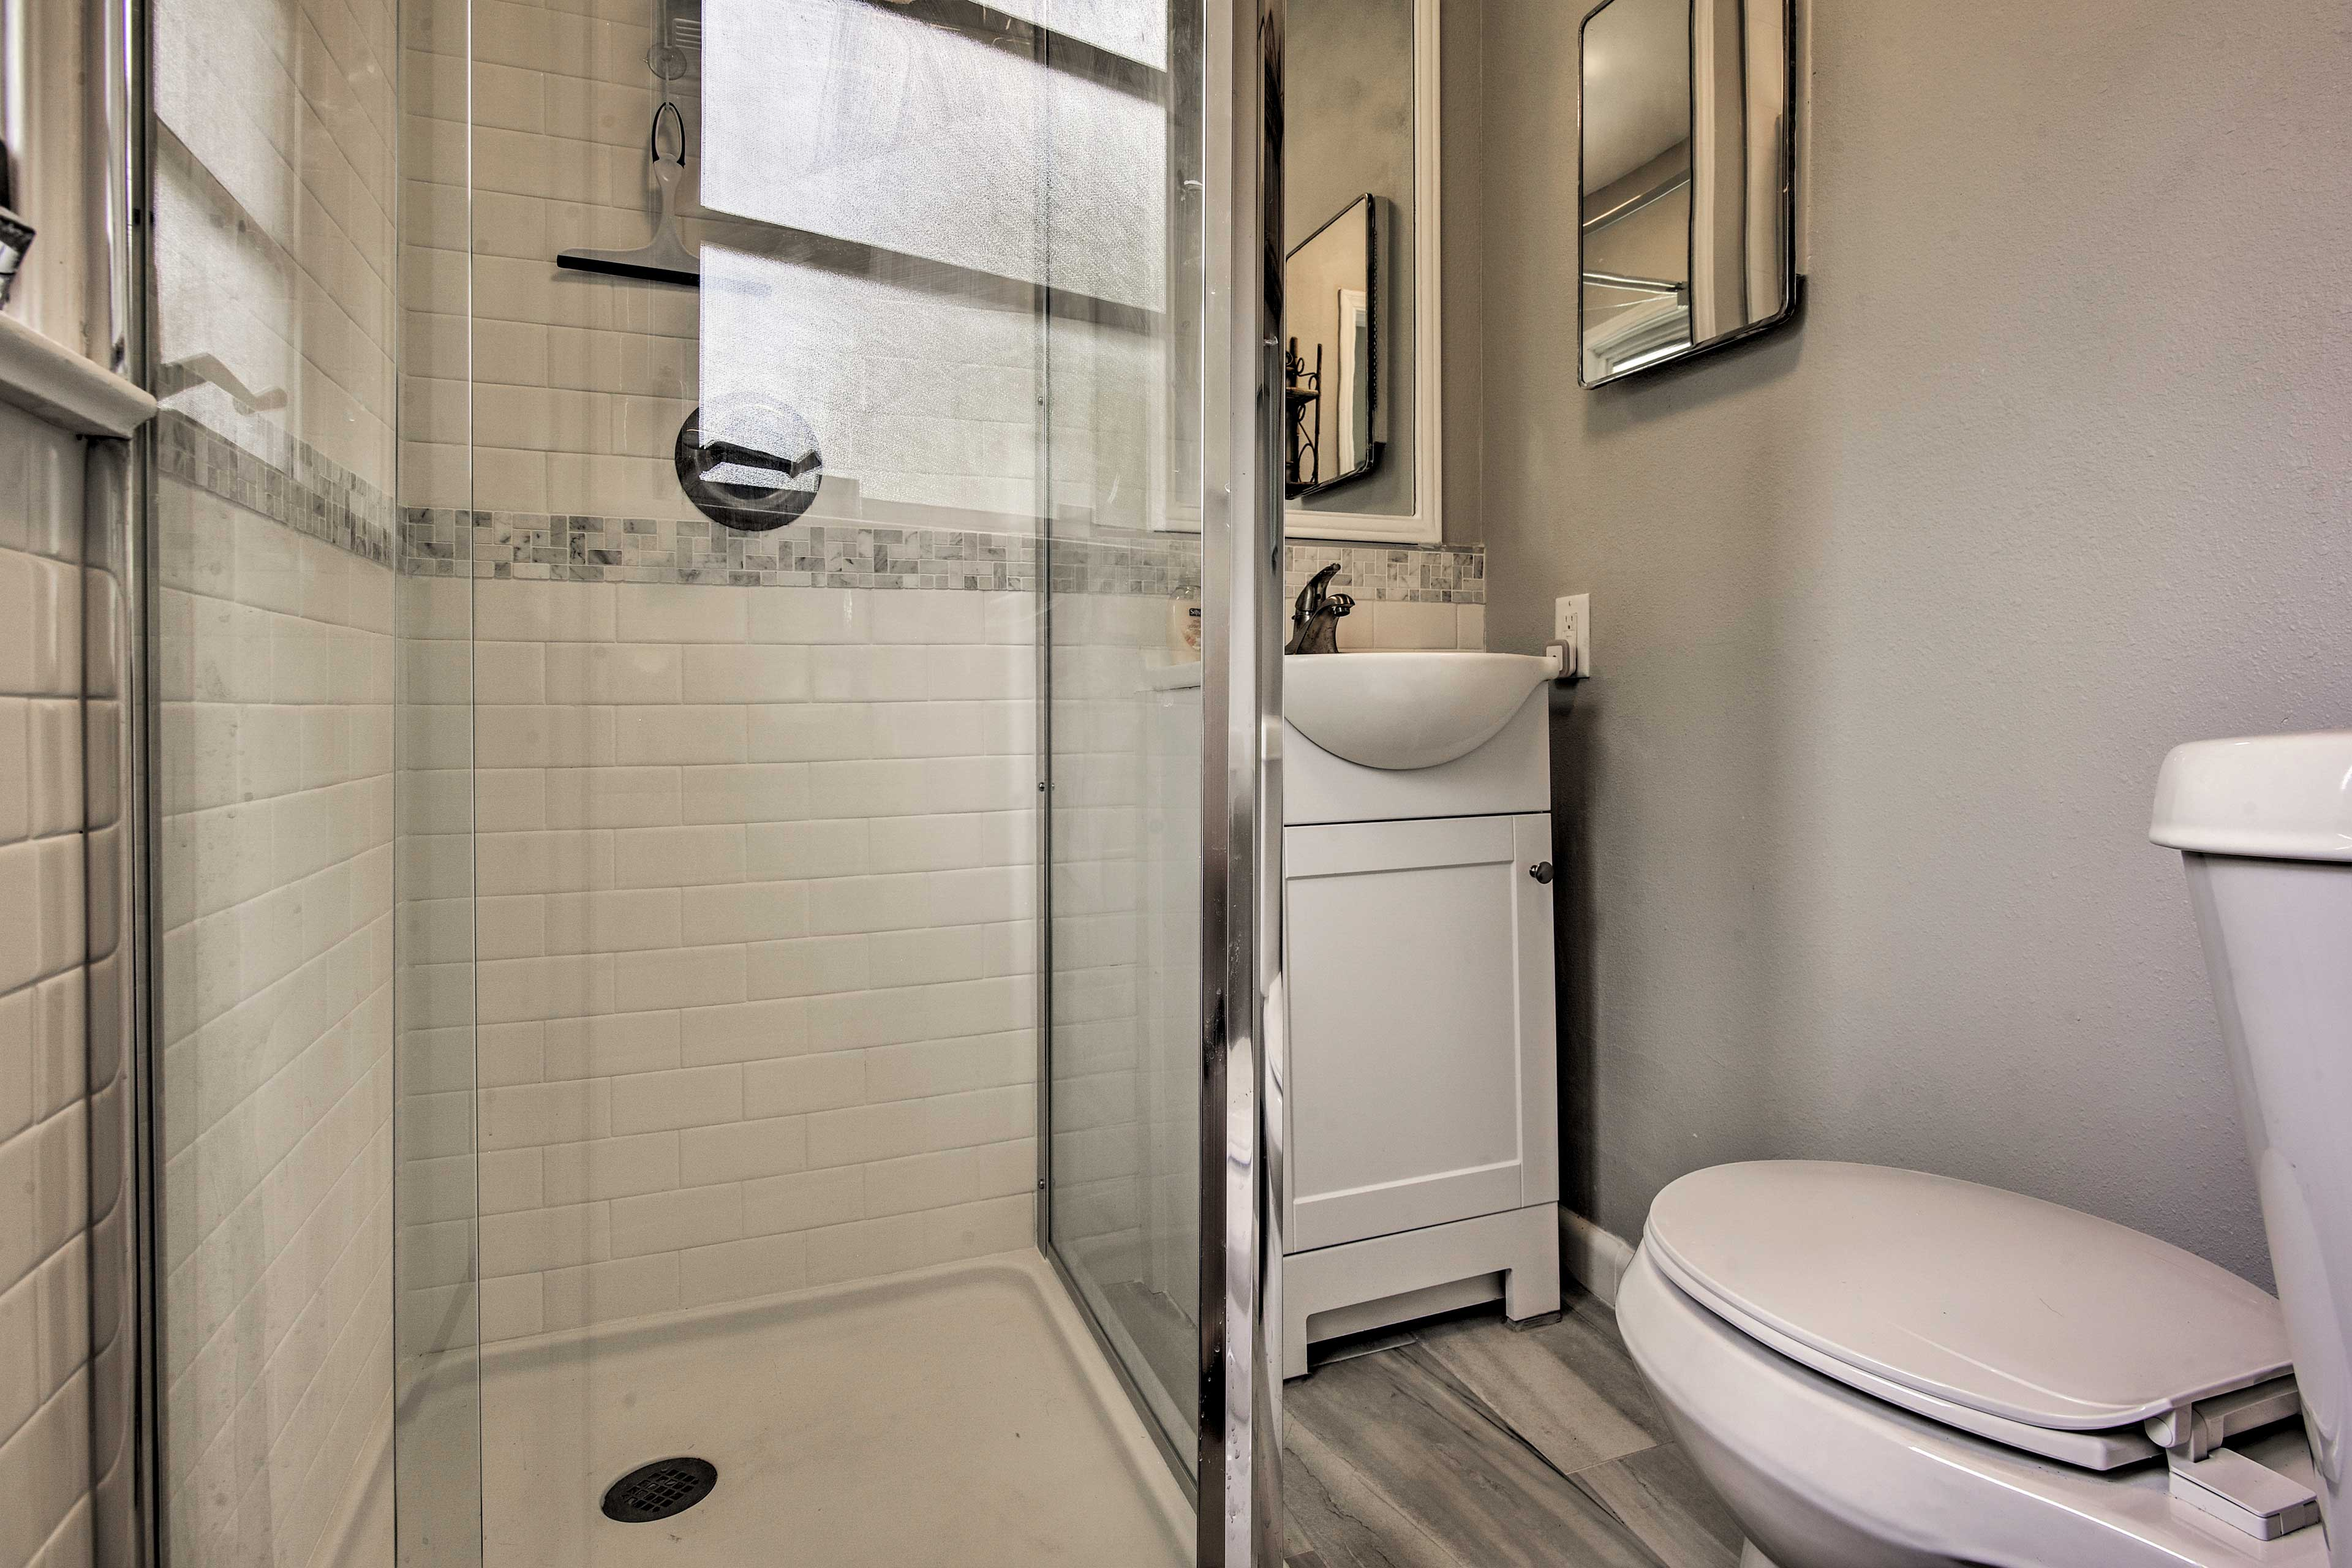 The second bedroom boasts a glass-enclosed shower.